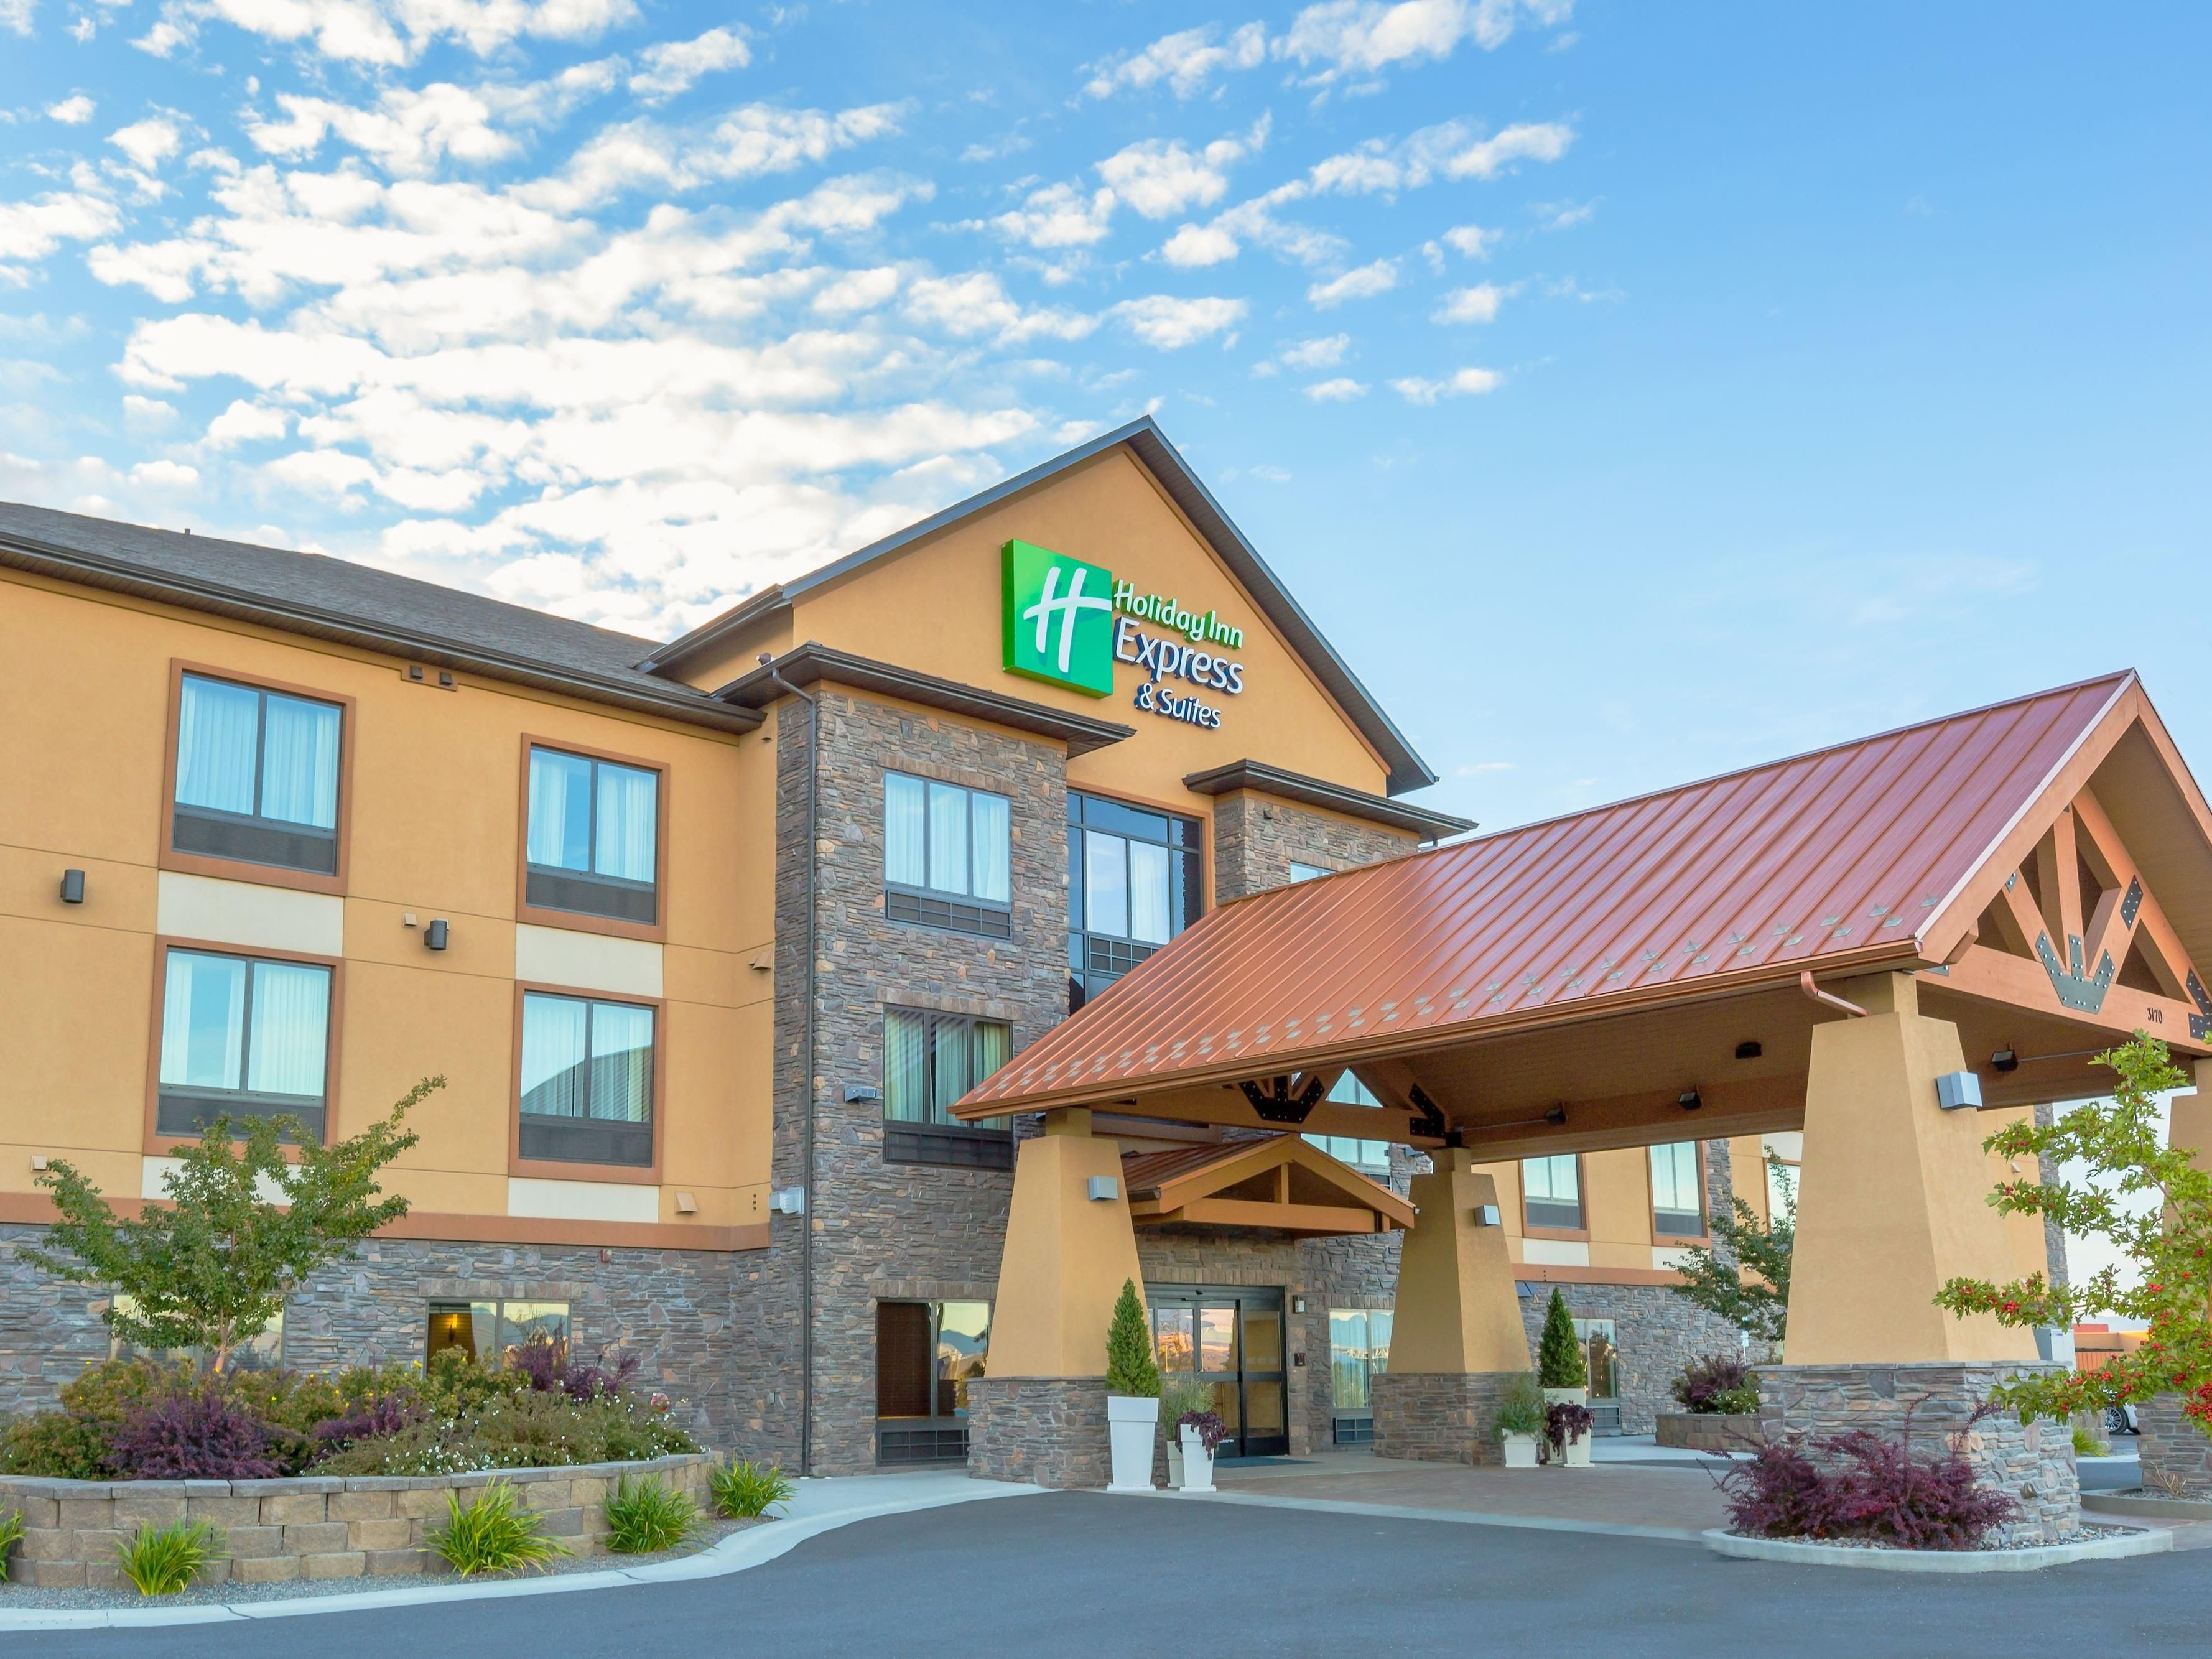 Welcome to the Holiday Inn Express & Suites Helena!